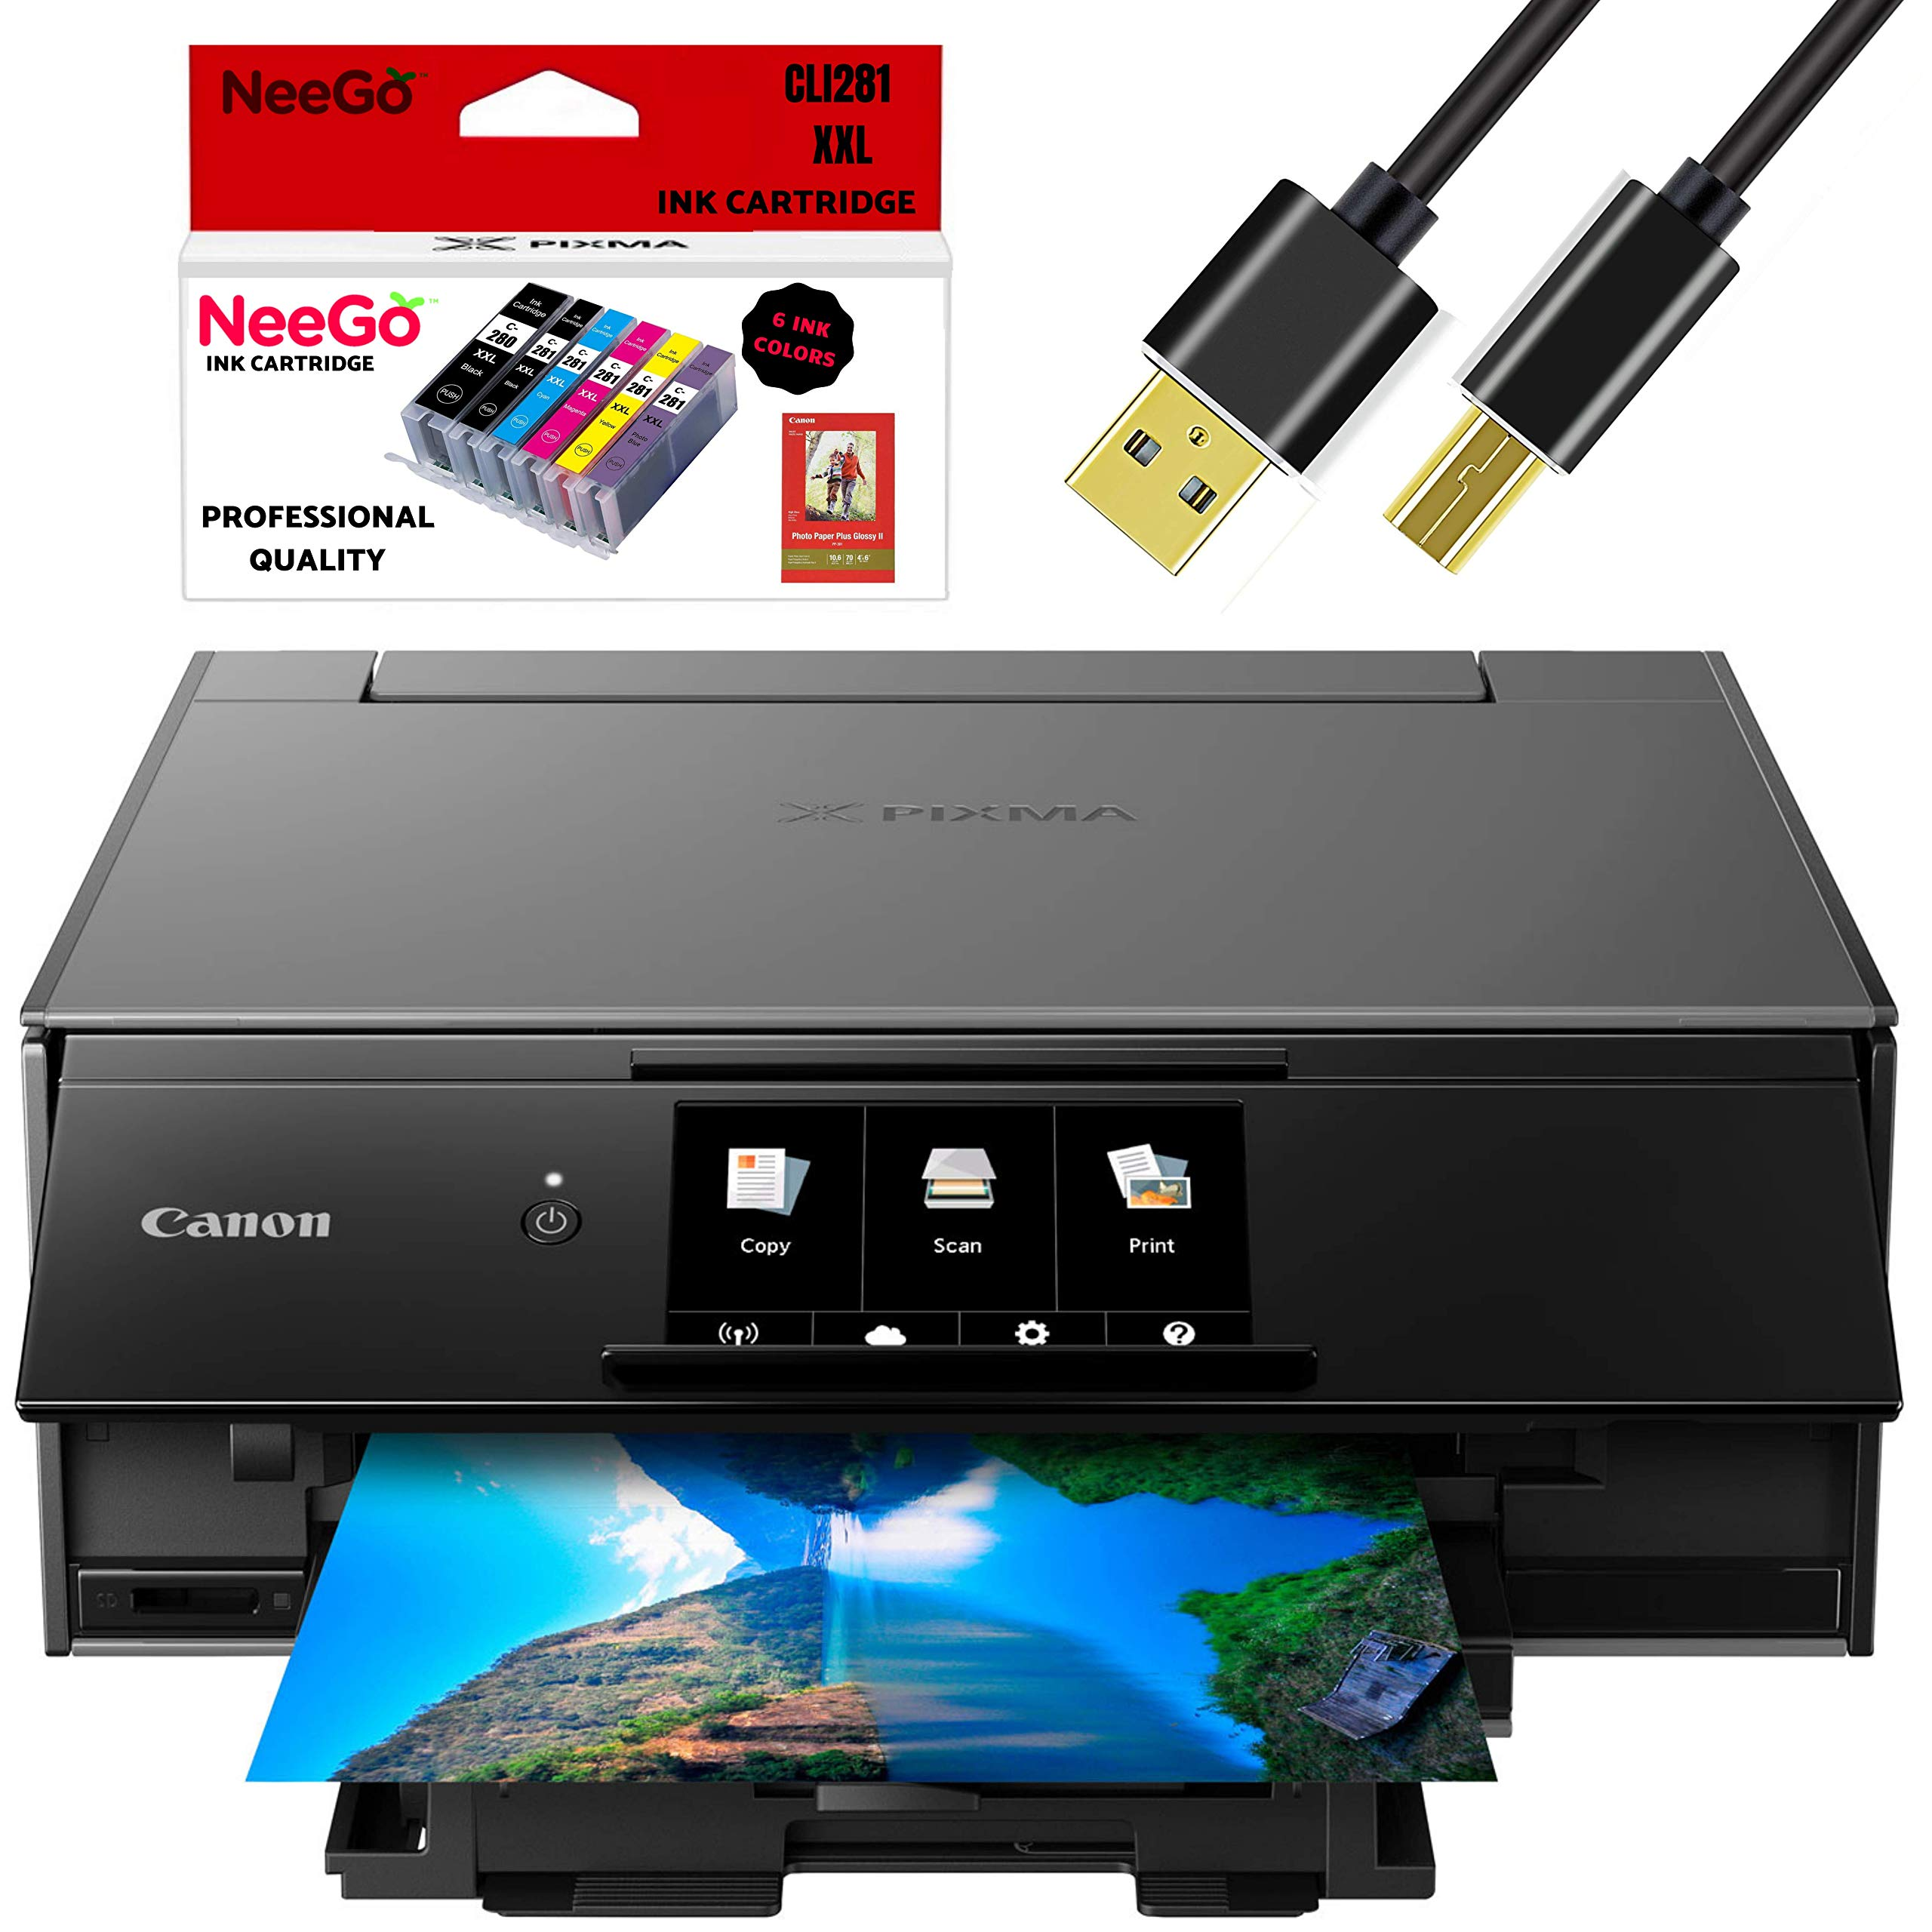 Canon Wireless Pixma TS9120 Inkjet All-in-one Printer with Scanner, Copier, Mobile Printing, Airprint and Google Cloud + Bonus Set of Ink and Printer Cable by Canon